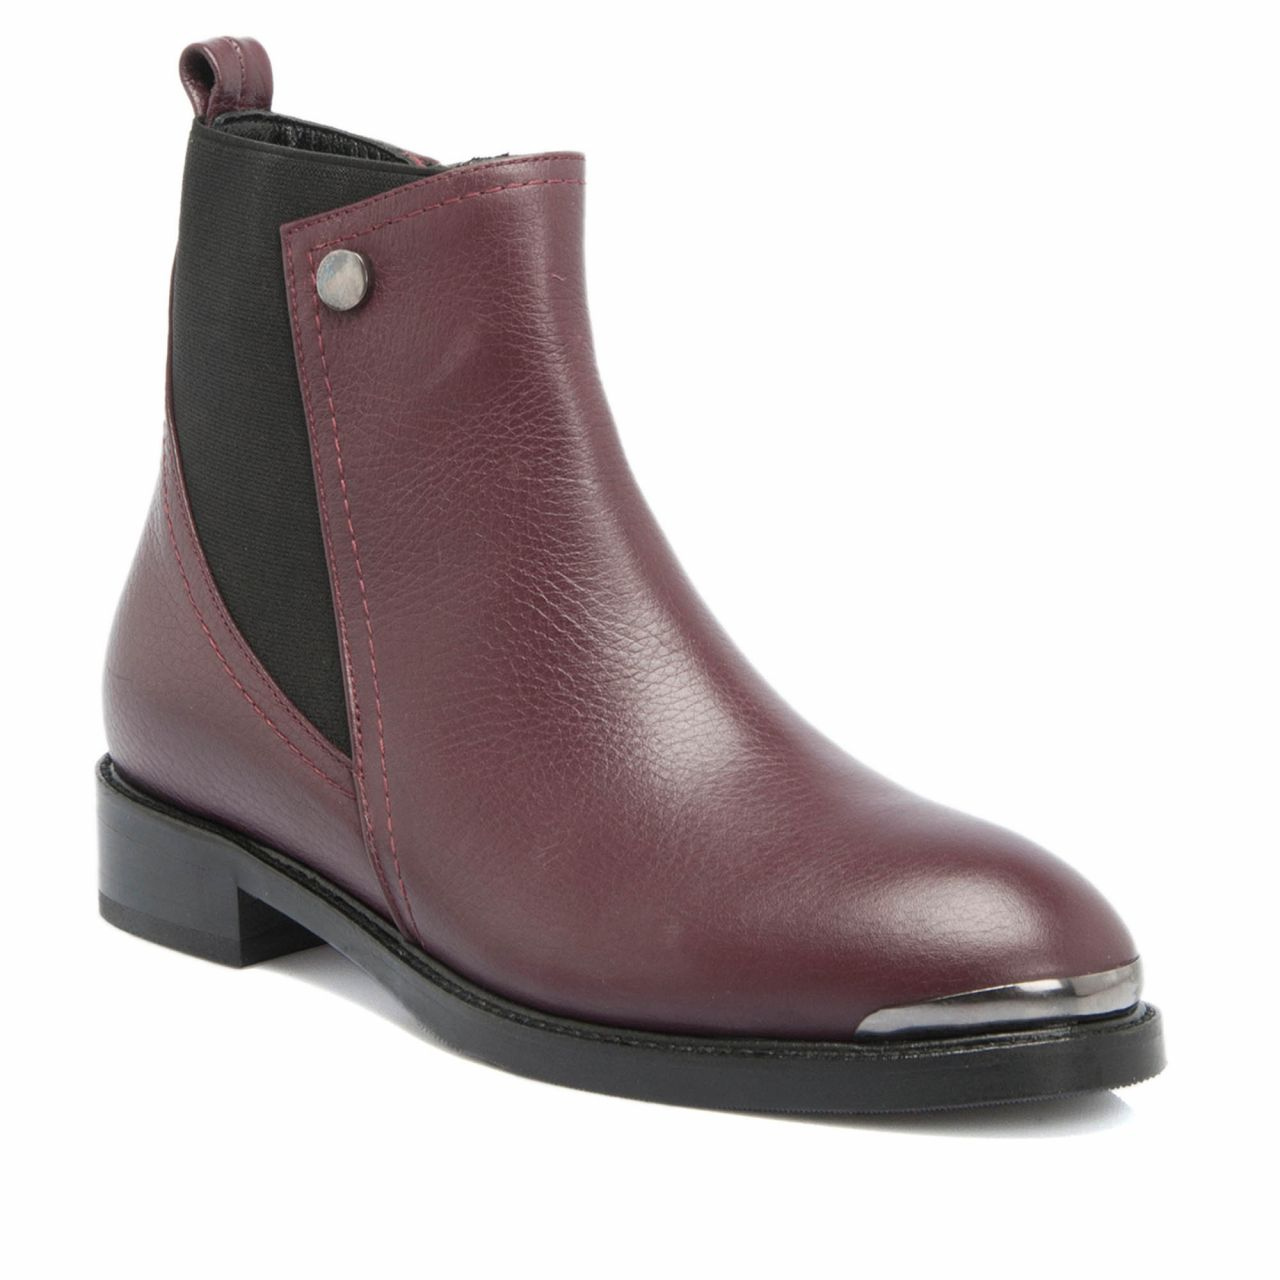 Burgundy Leather Women's Boots